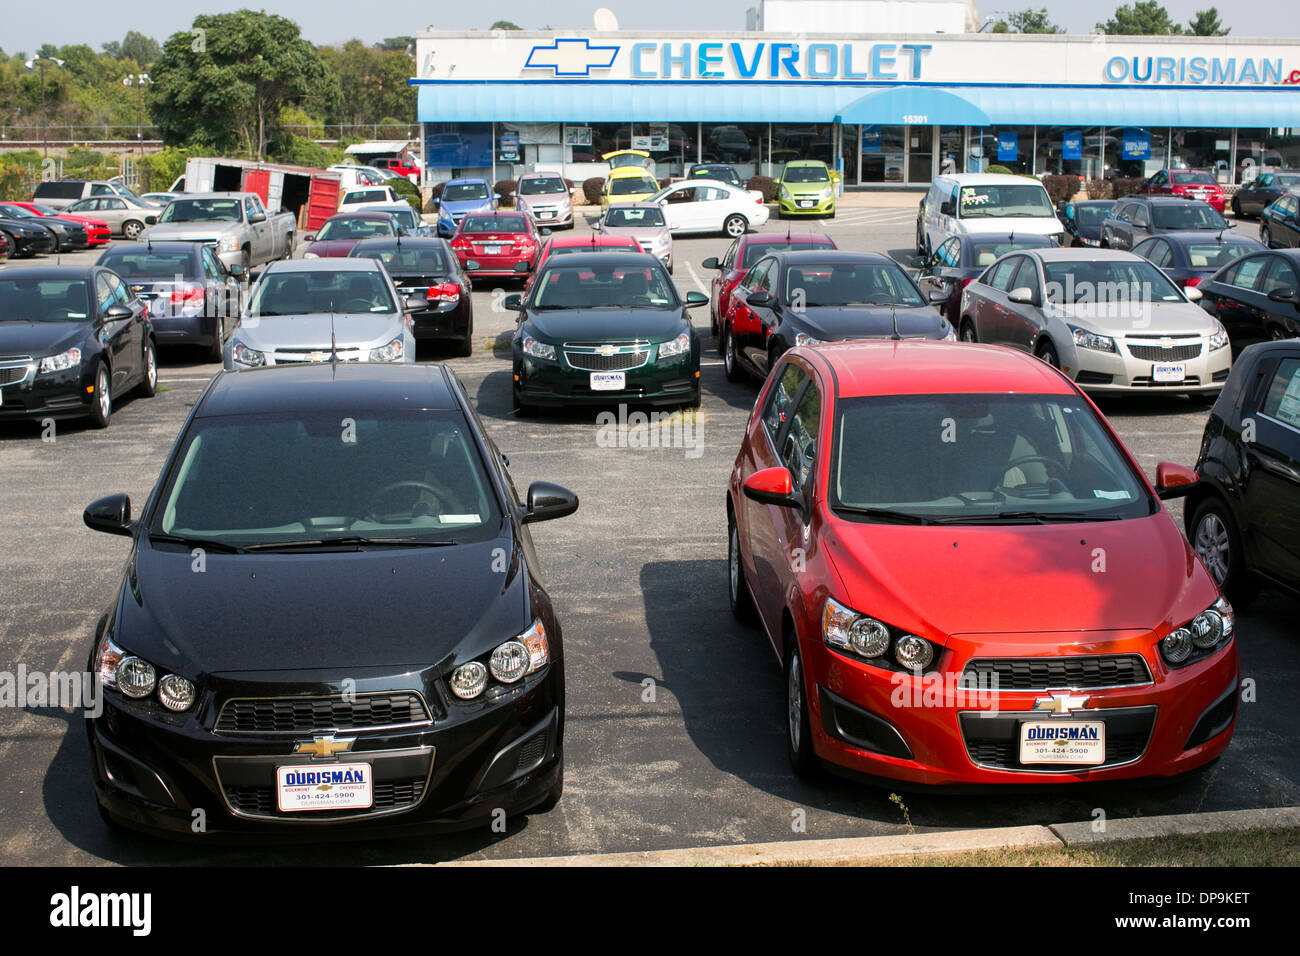 A Chevrolet, Chevy, dealer lot in suburban Maryland Stock ...